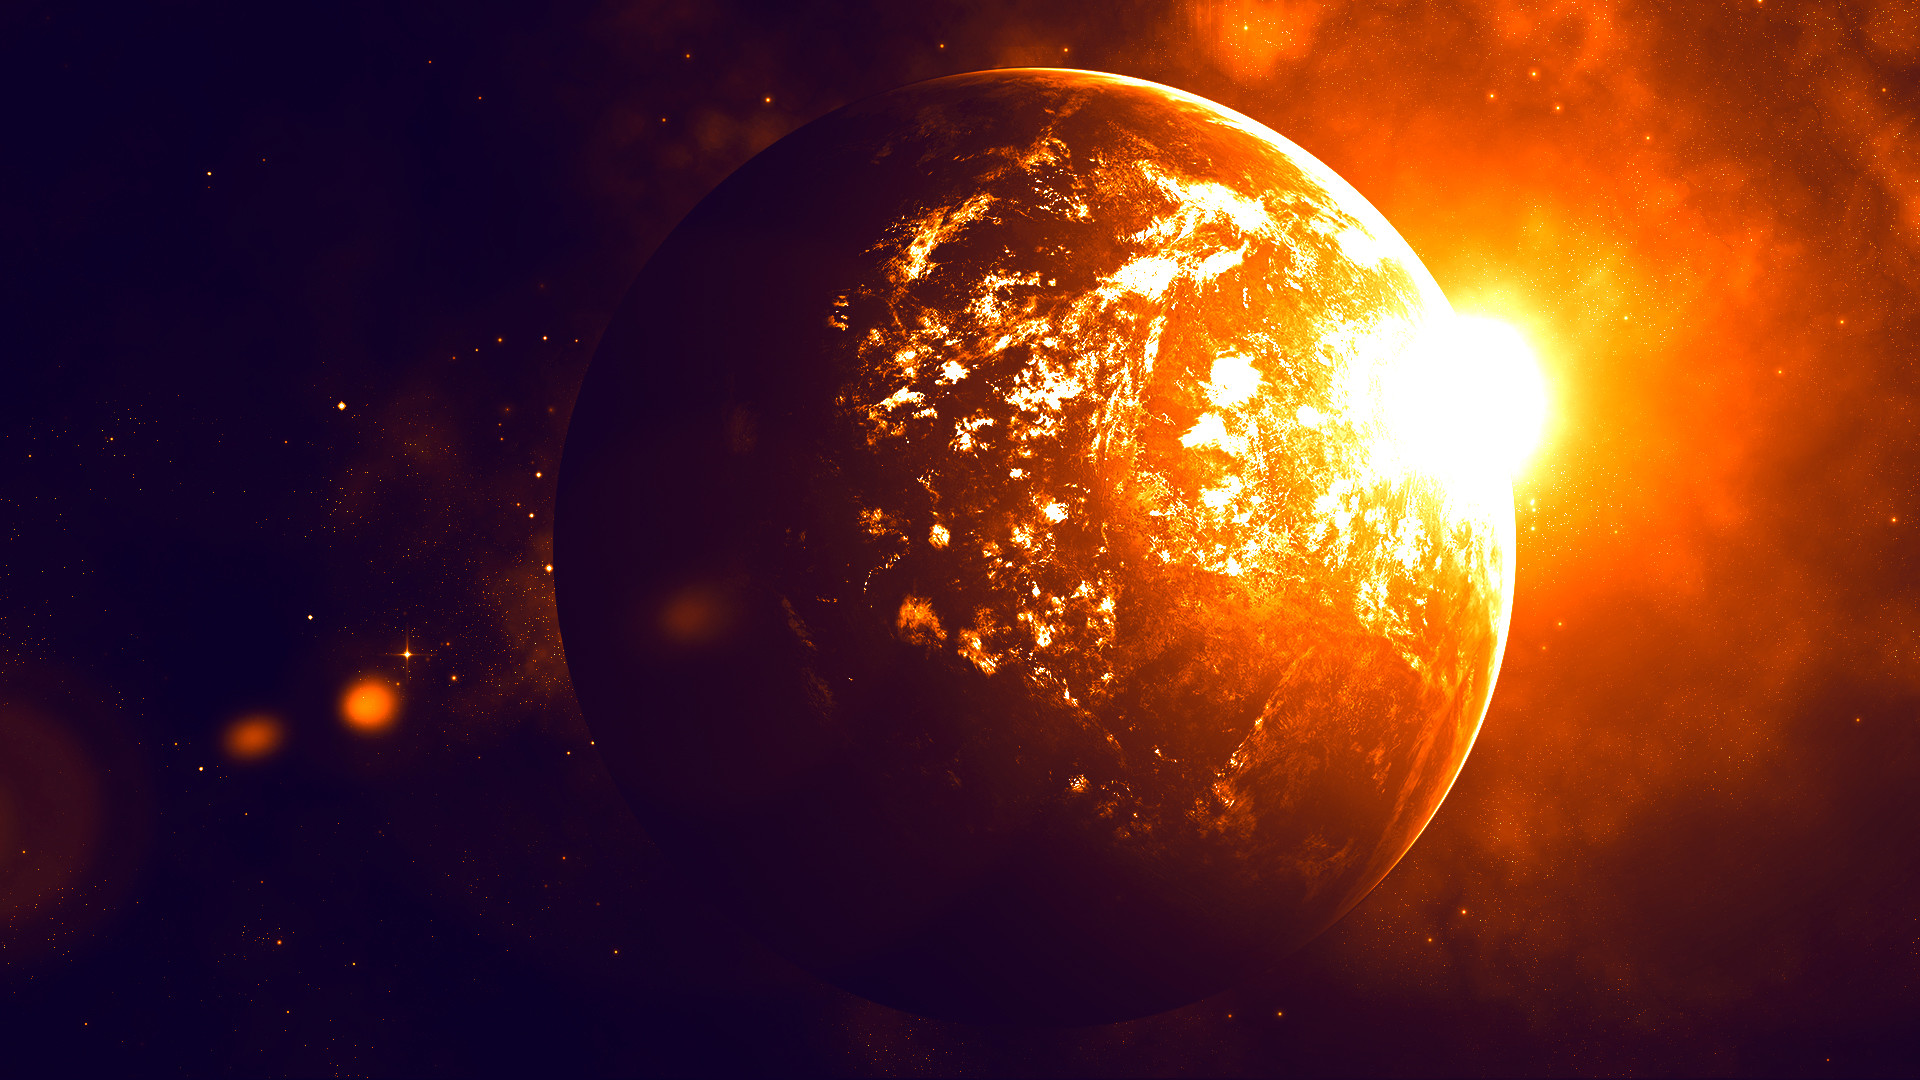 … The Planet on Fire (Wallpaper) by Hardii